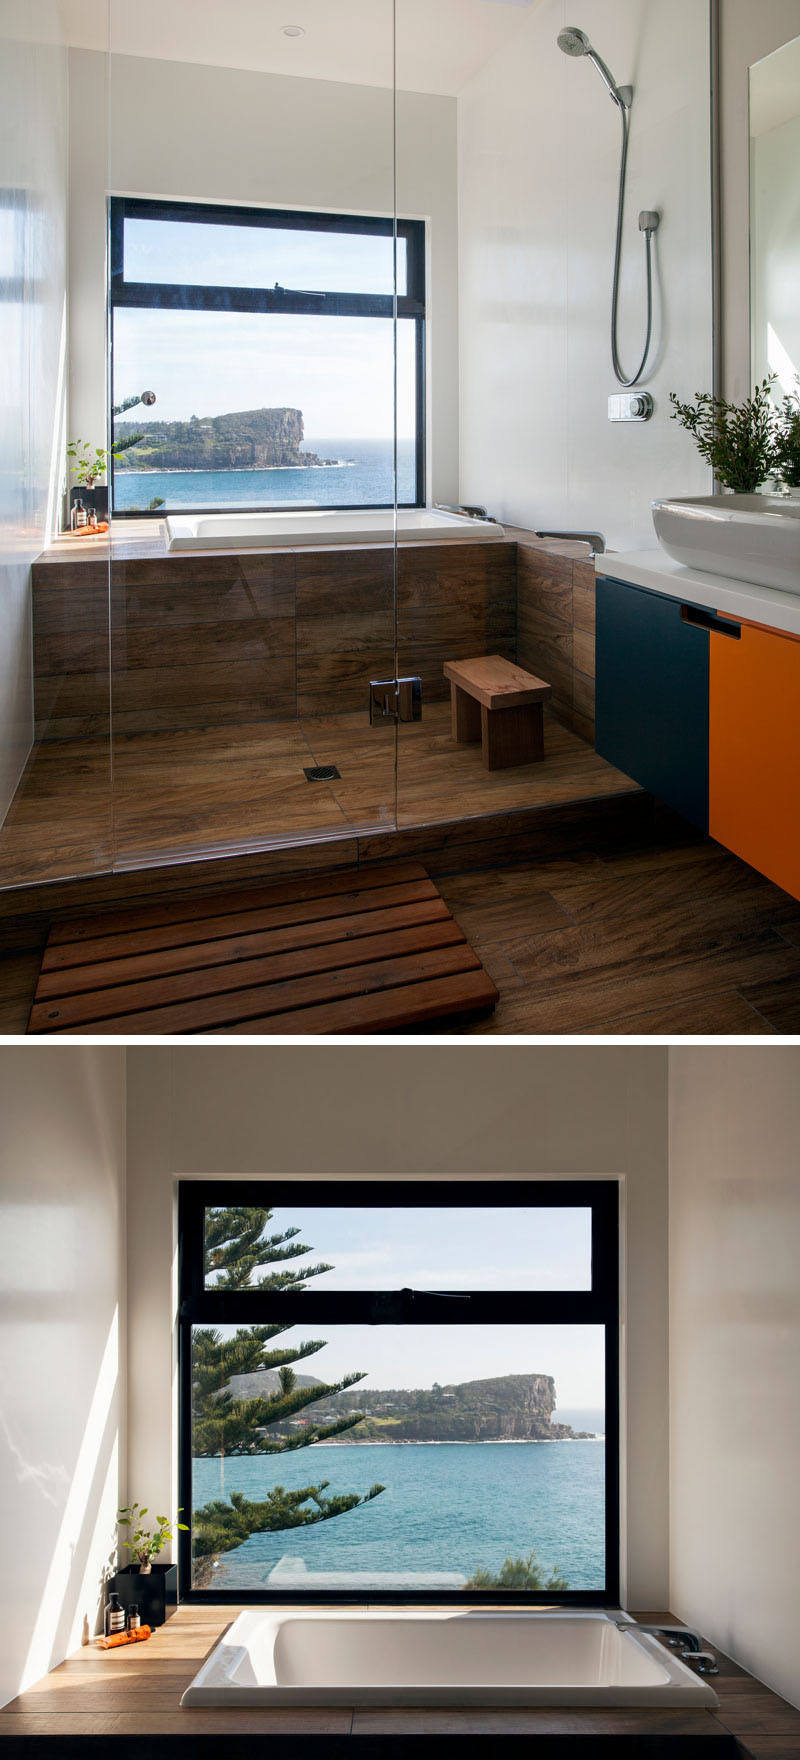 casa-cu-acoperis-natural-green-roof-prefabricated-house-8